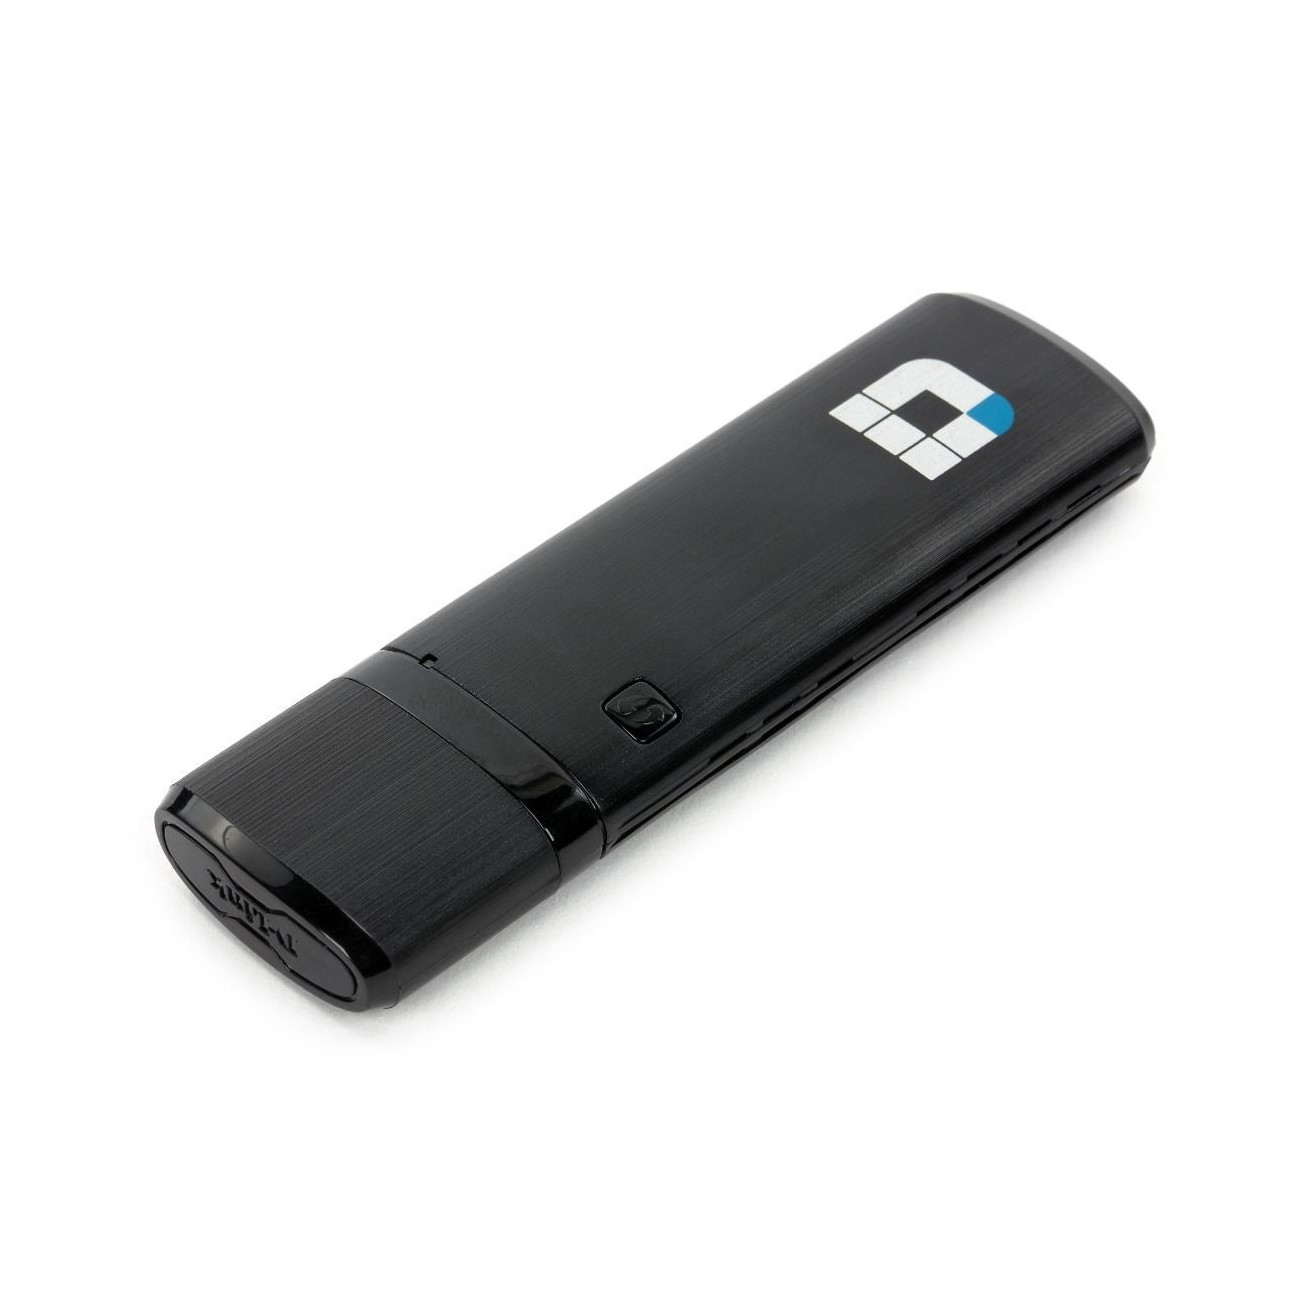 Adaptador Wireless Usb Dlink Dual Band Ac 1200 Mbps Dwa-182